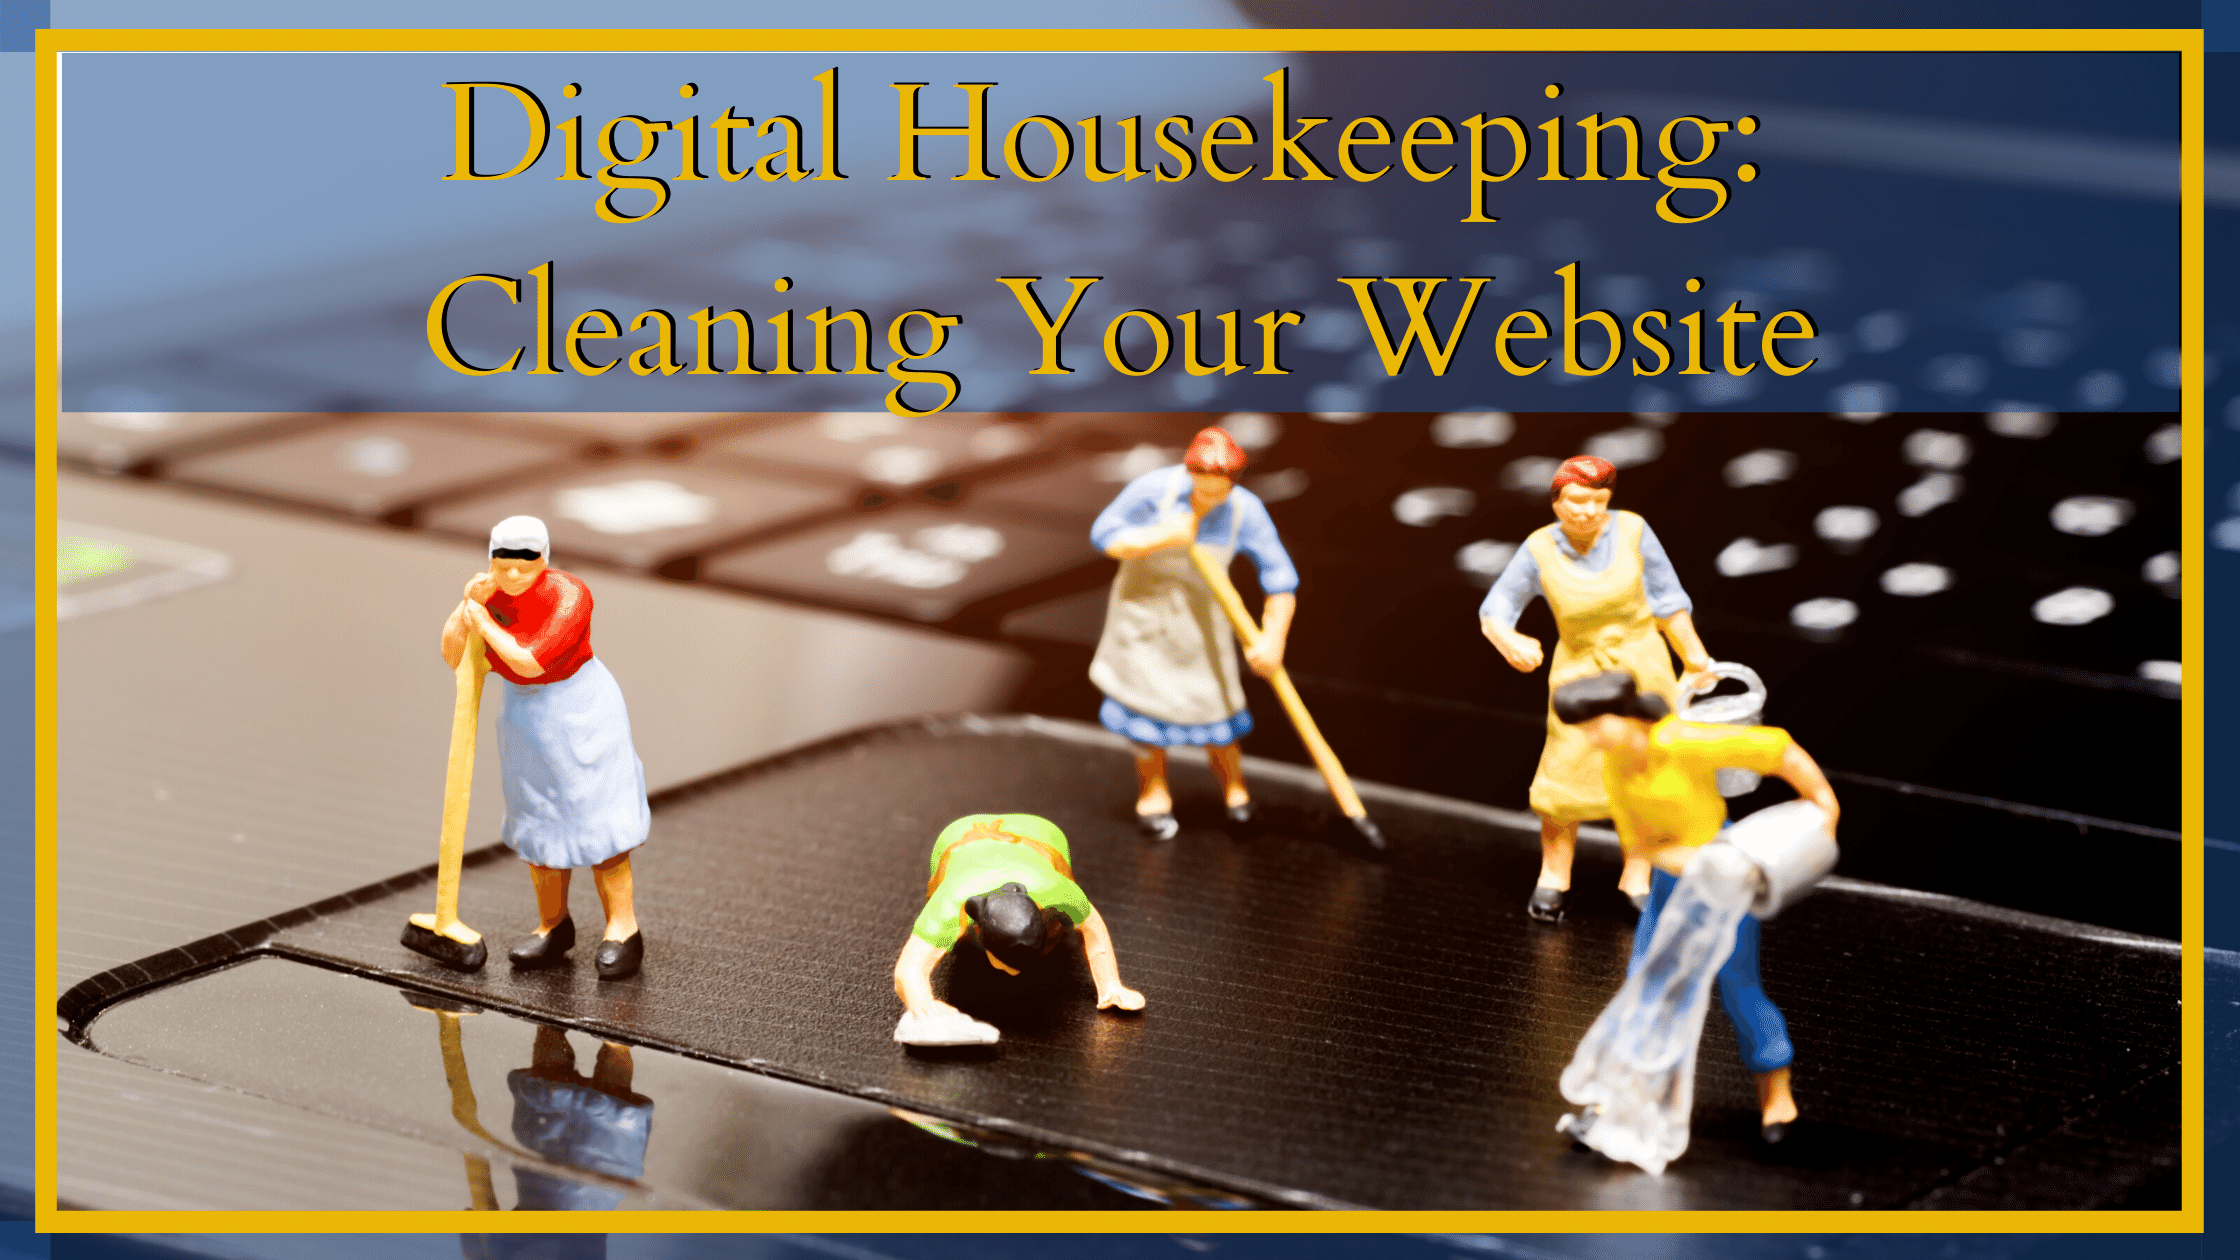 Digital Housekeeping and why it's important to update your website regularly.